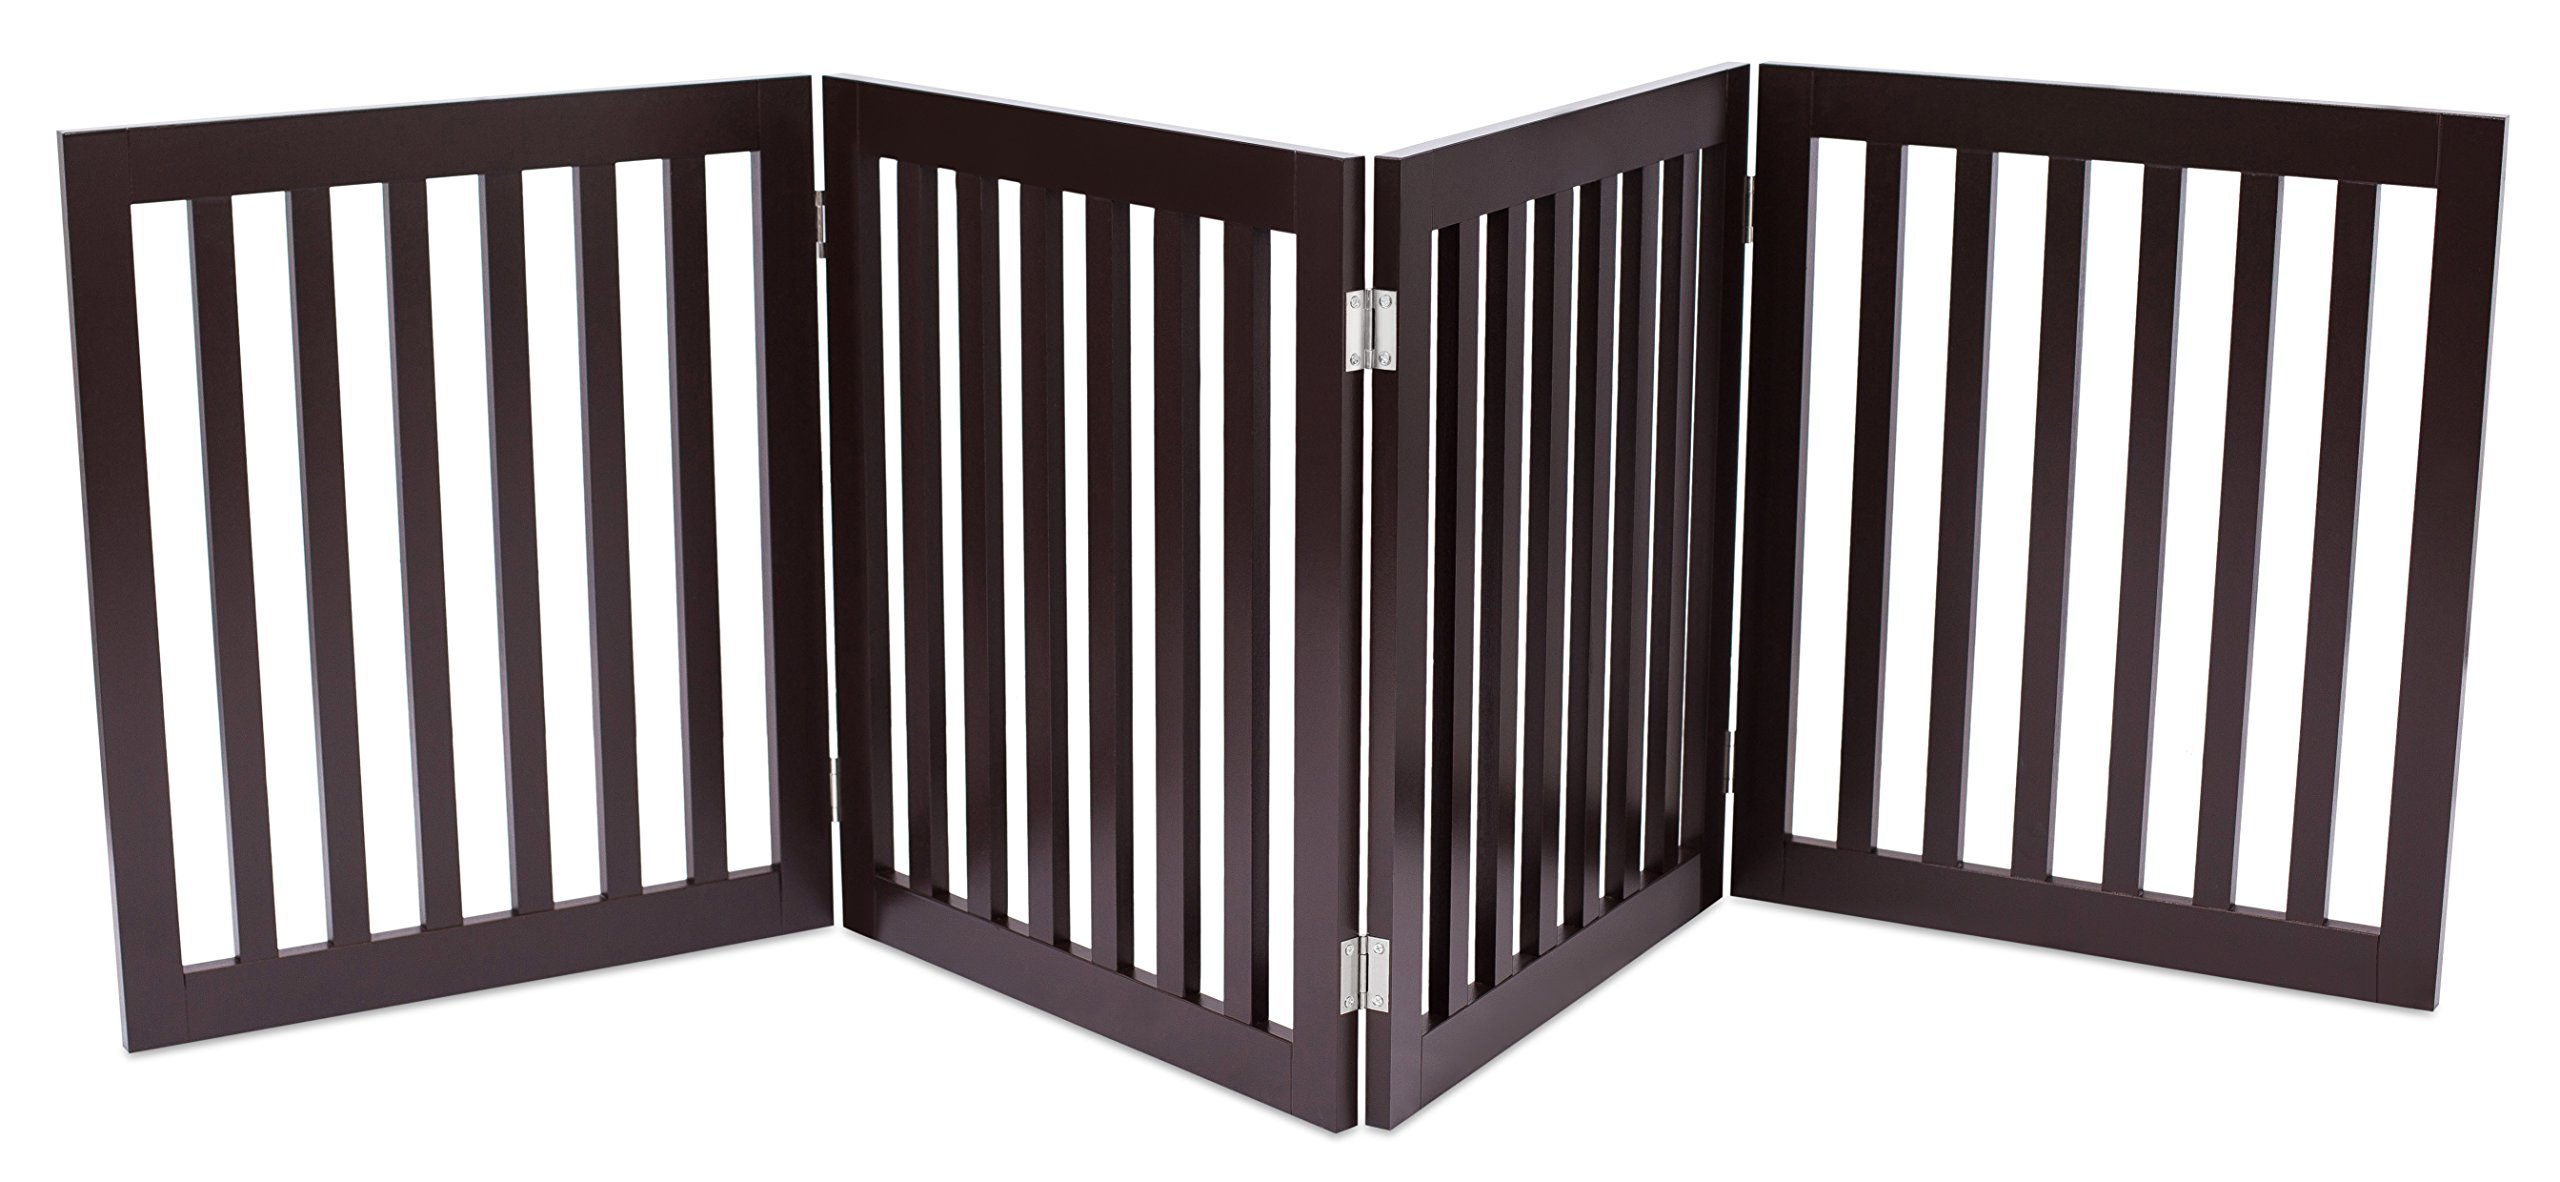 Internet's Best Traditional Pet Gate | 4 Panel | 24 Inch Step Over Fence | Free Standing Folding Z Shape Indoor Doorway Hall Stairs Dog Puppy Gate | Fully Assembled | Espresso | Wooden